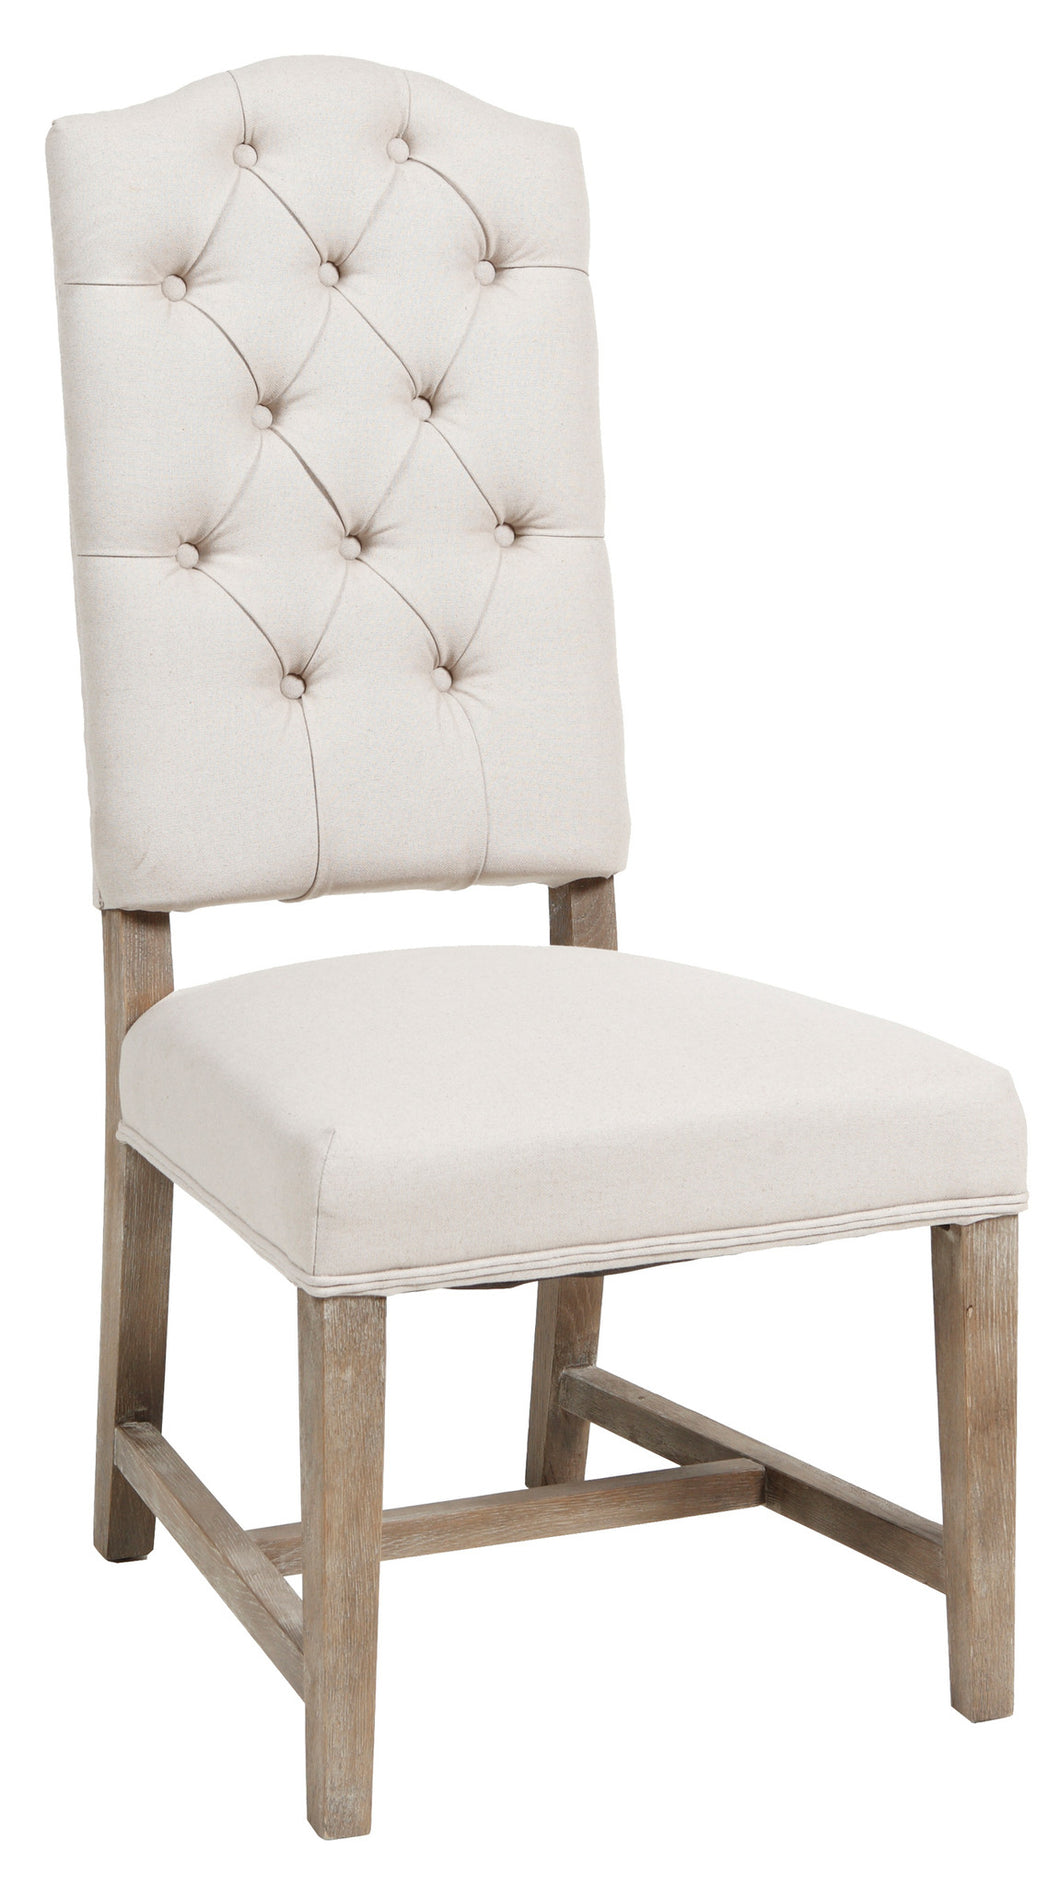 Ava Side Chair, Home Furnishings, Laura of Pembroke